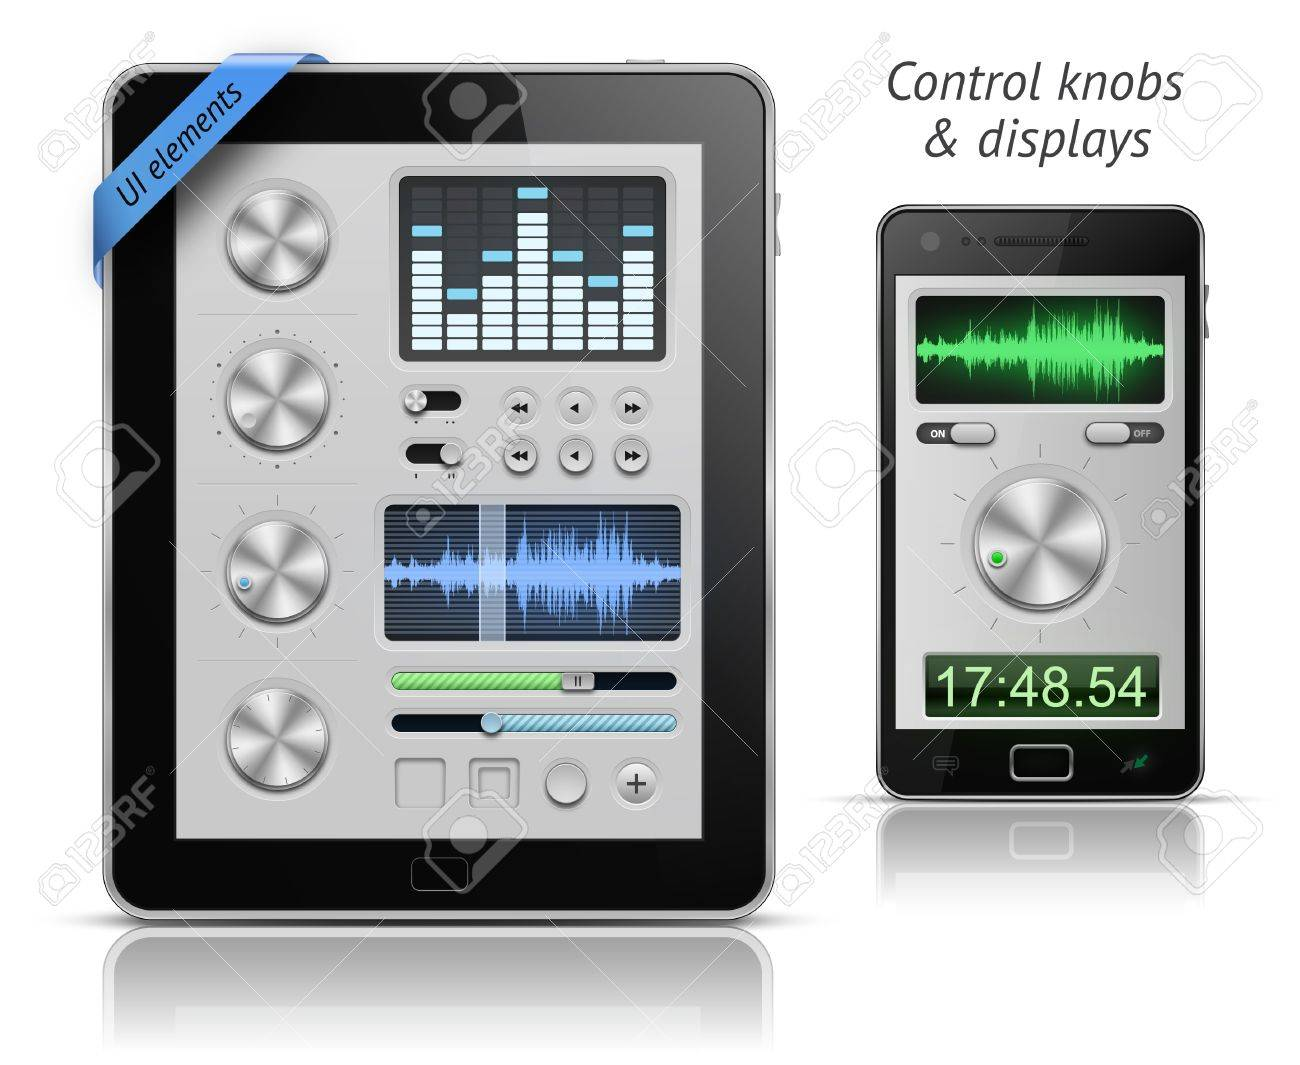 UI elements for tablets and smartphones. Control knobs and displays. EPS 10 vector illustration Stock Vector - 10080953